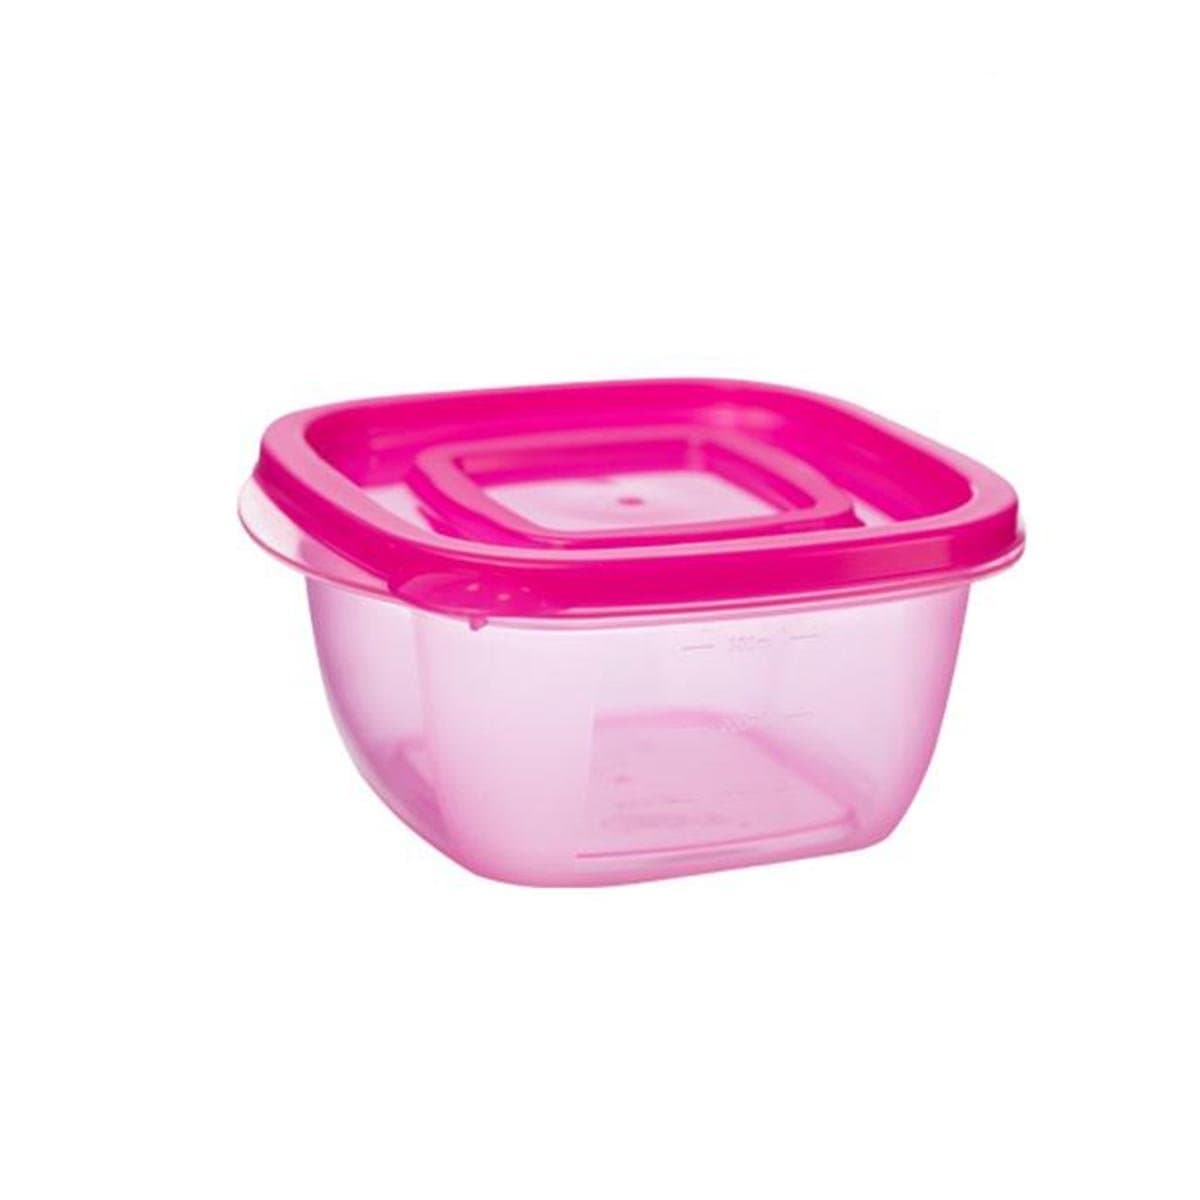 0131 Food Container 0.35L